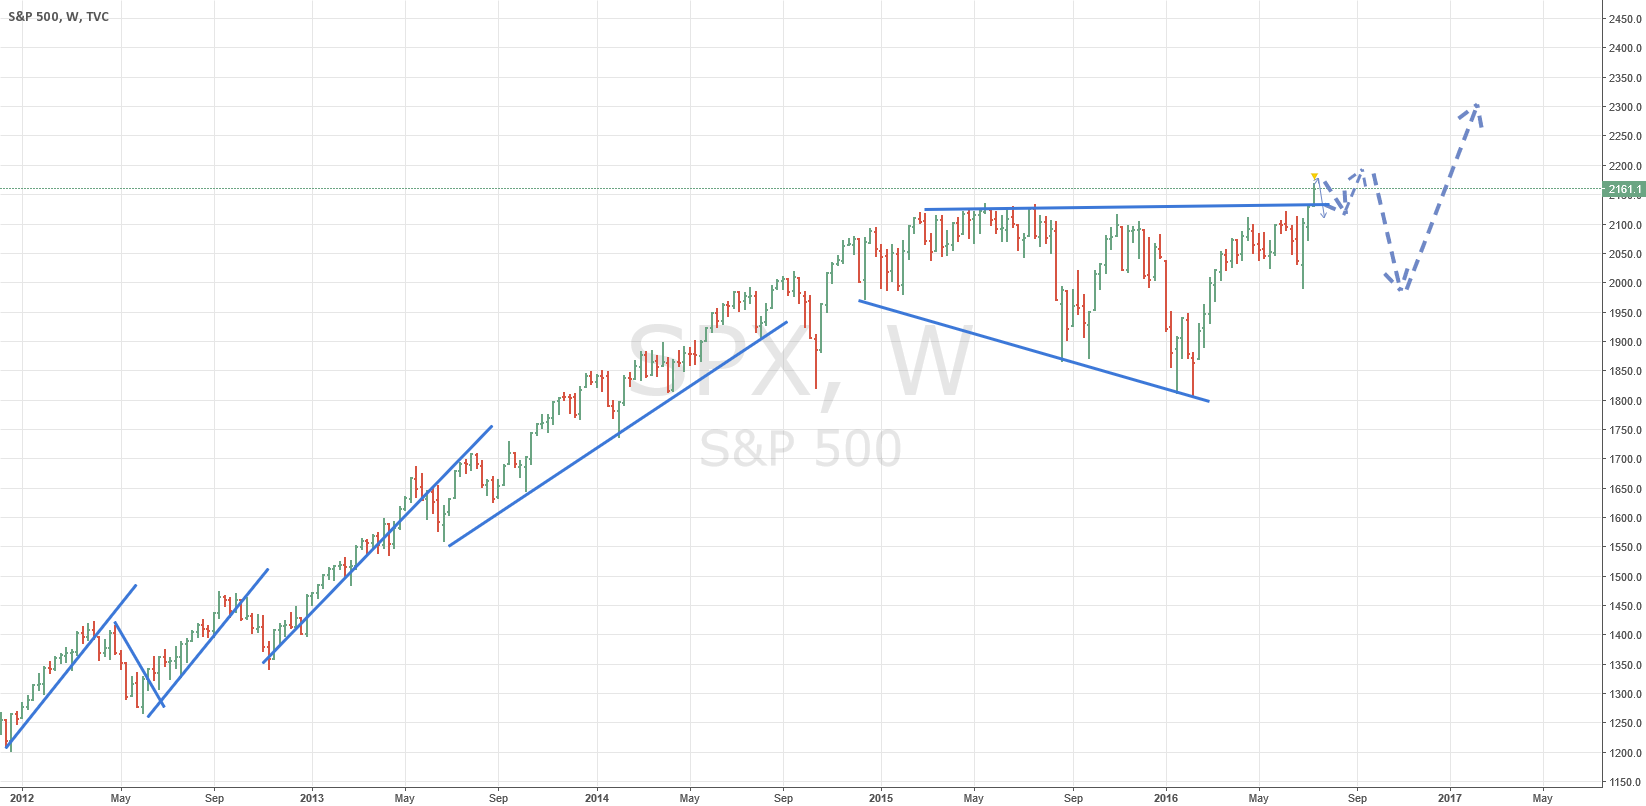 S&P OVERTHROWN OUT OF TRIANGLE BUT GOING DOWN AFTER